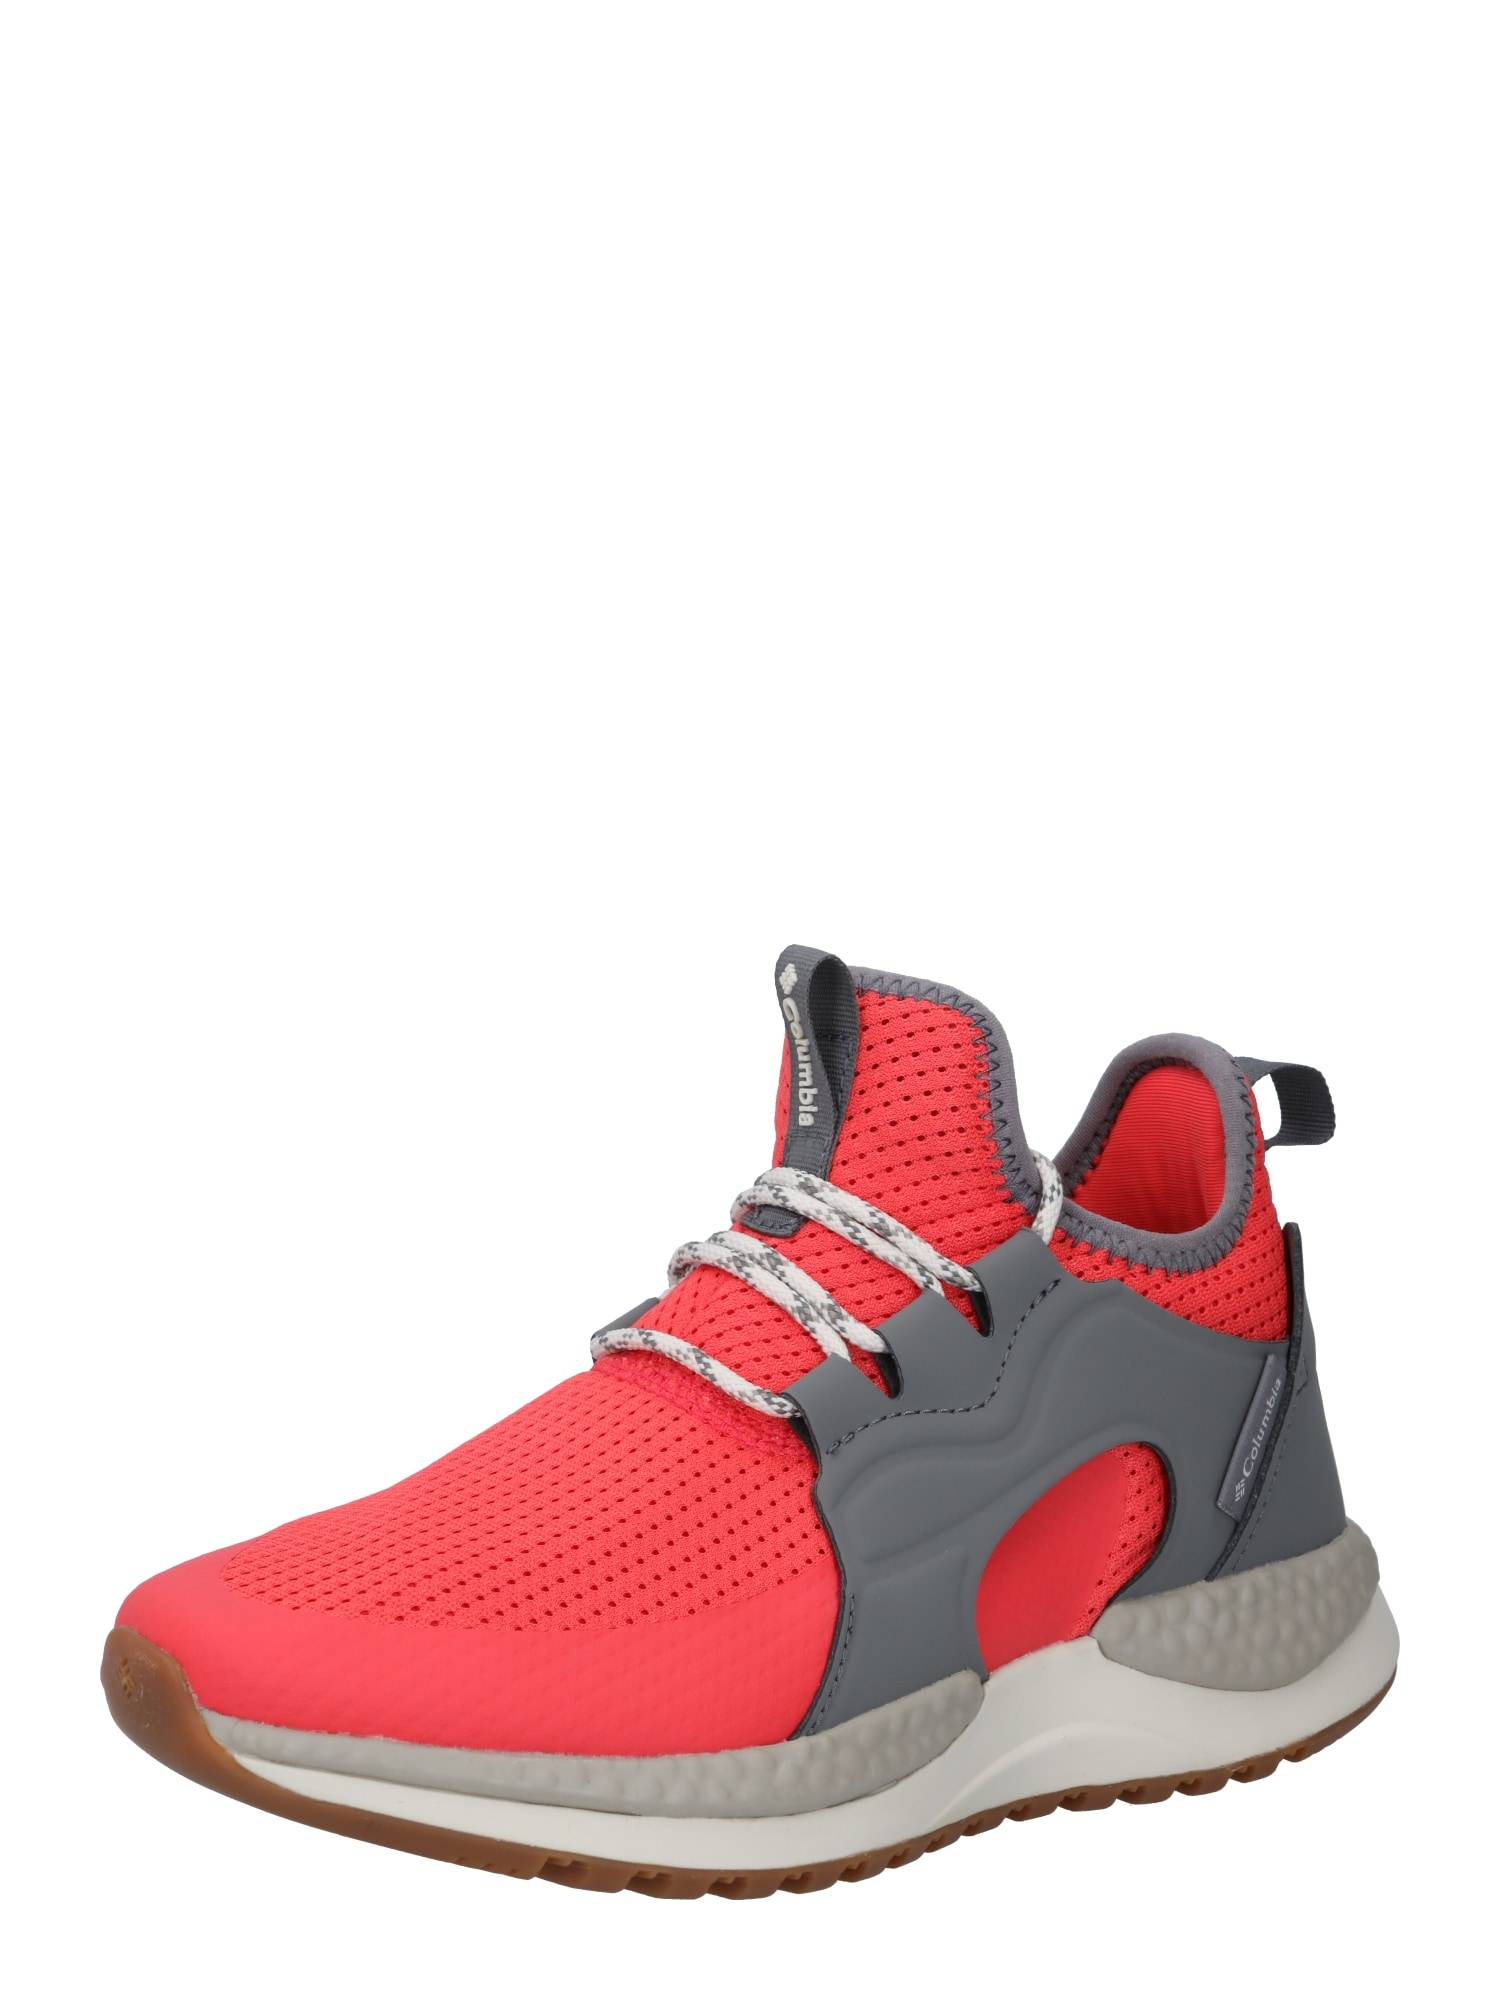 Columbia Baskets basses 'AURORA'  - Rouge - Taille: 11 - female